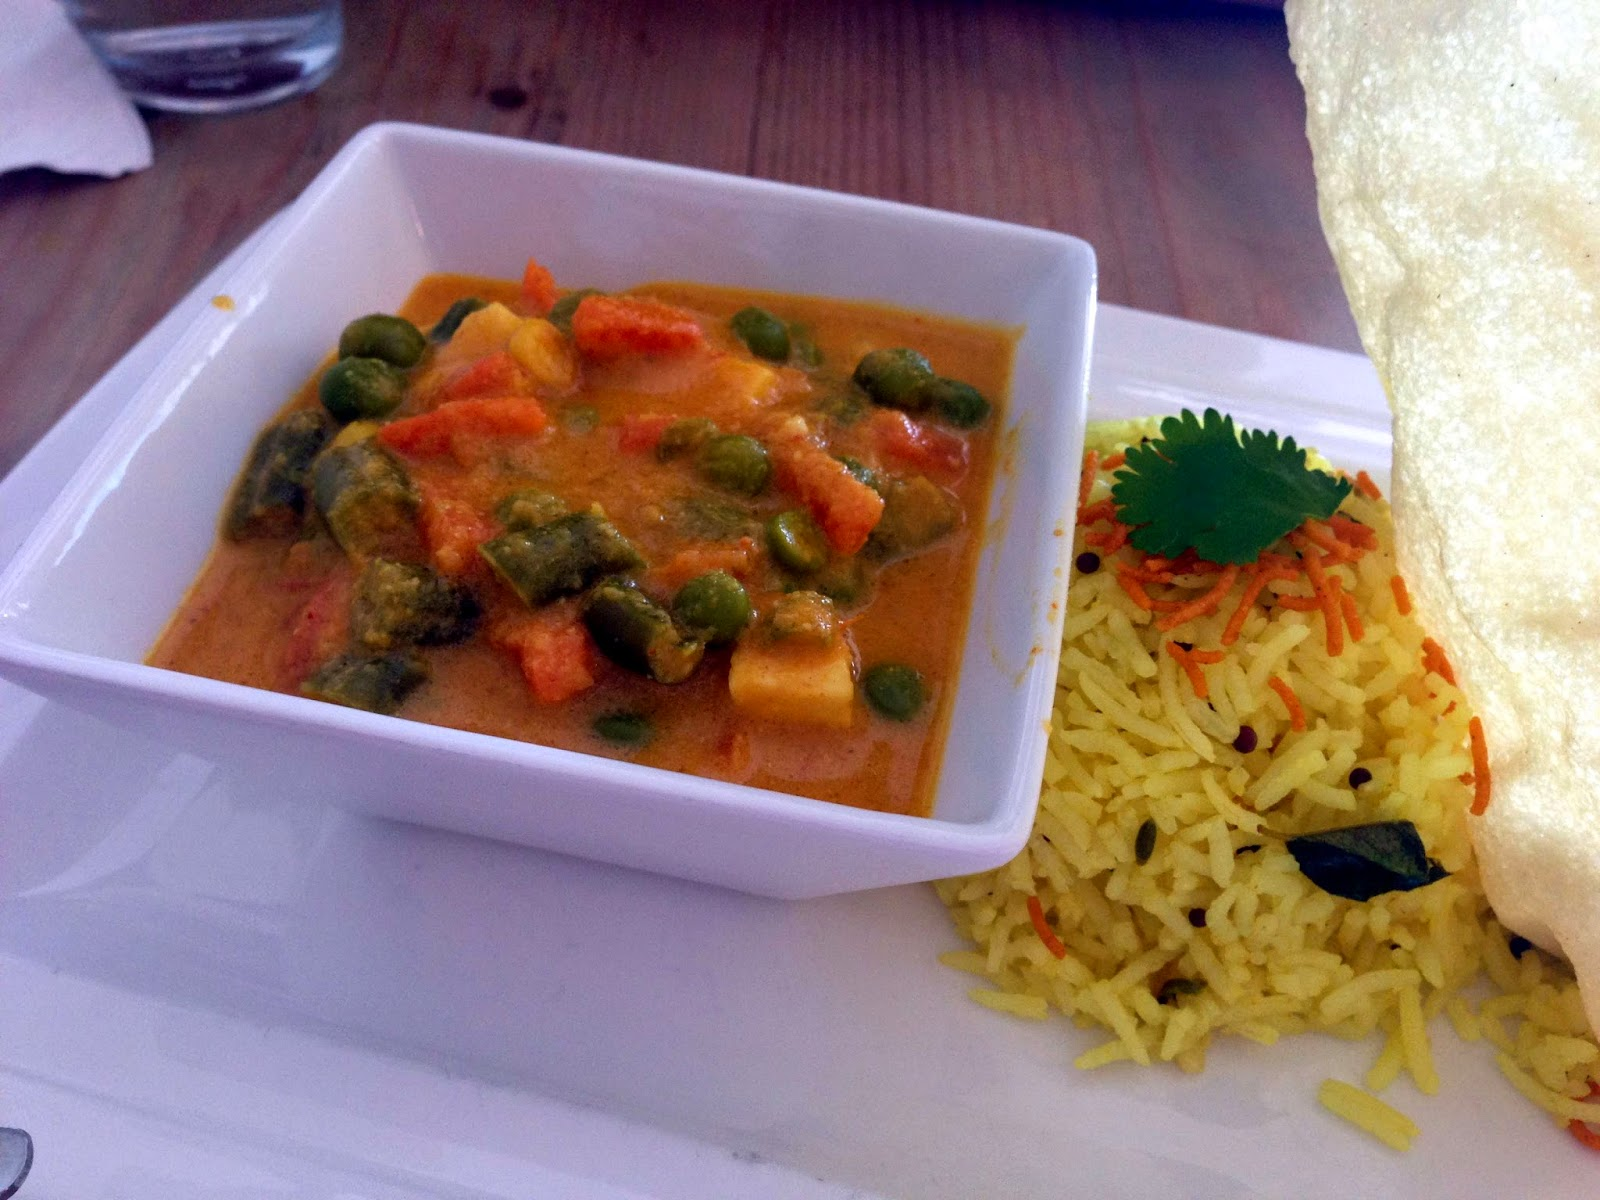 Stitch & Bear - Iyer's Cafe - Kadai paneer curry